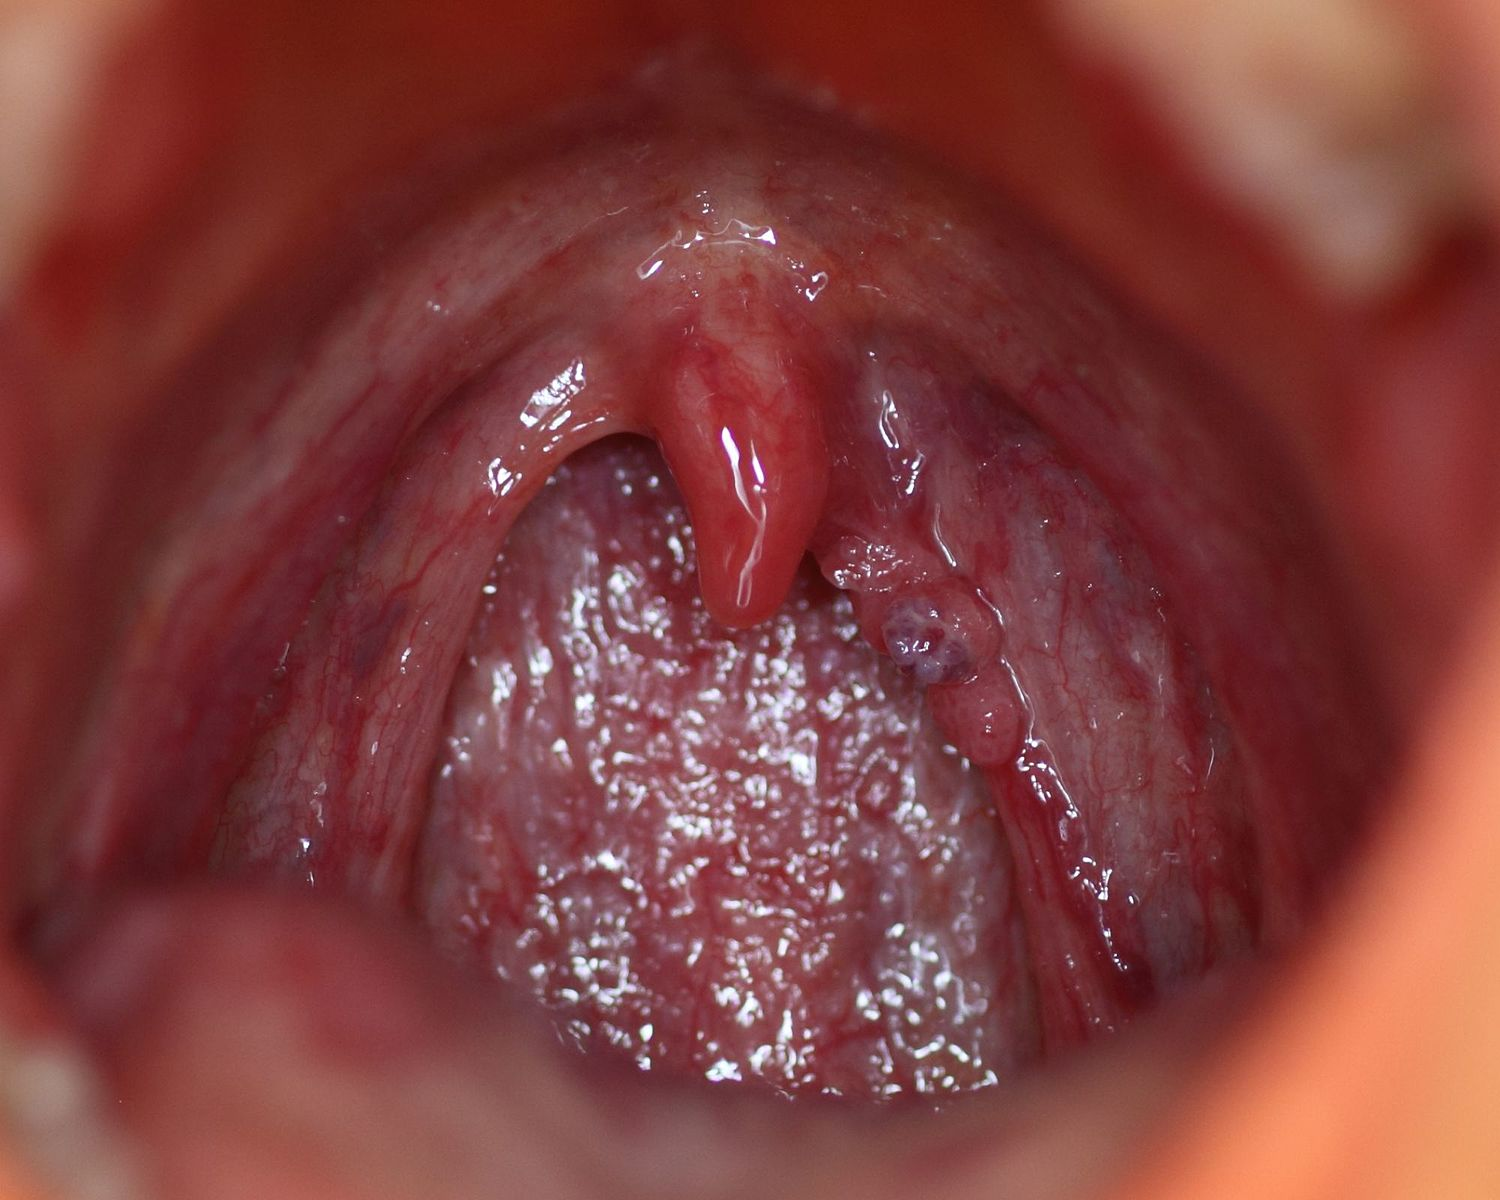 papilloma mouth cause